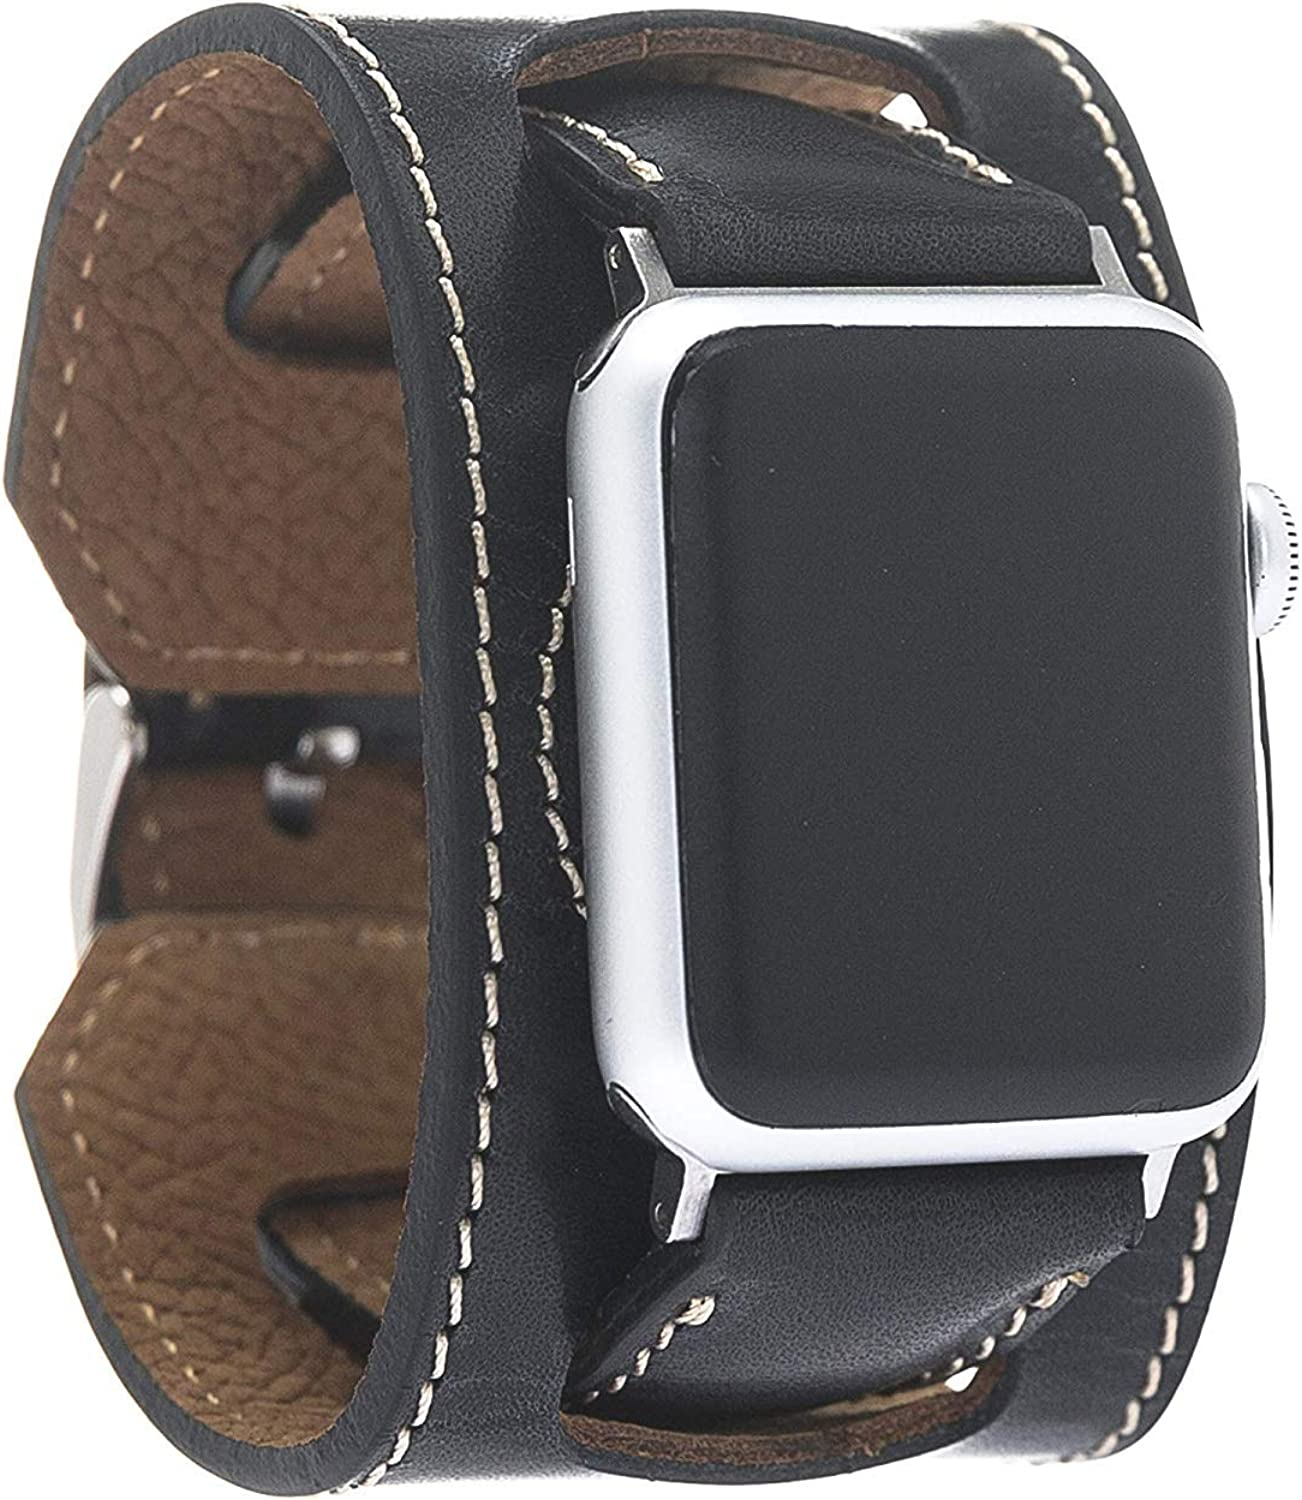 Bouletta Leather Cuff Watch Band for Apple Watch 38mm 40mm 42mm 44mm, iWatch Cuff Strap Wristband for Apple Watch Series 4 3 2 1